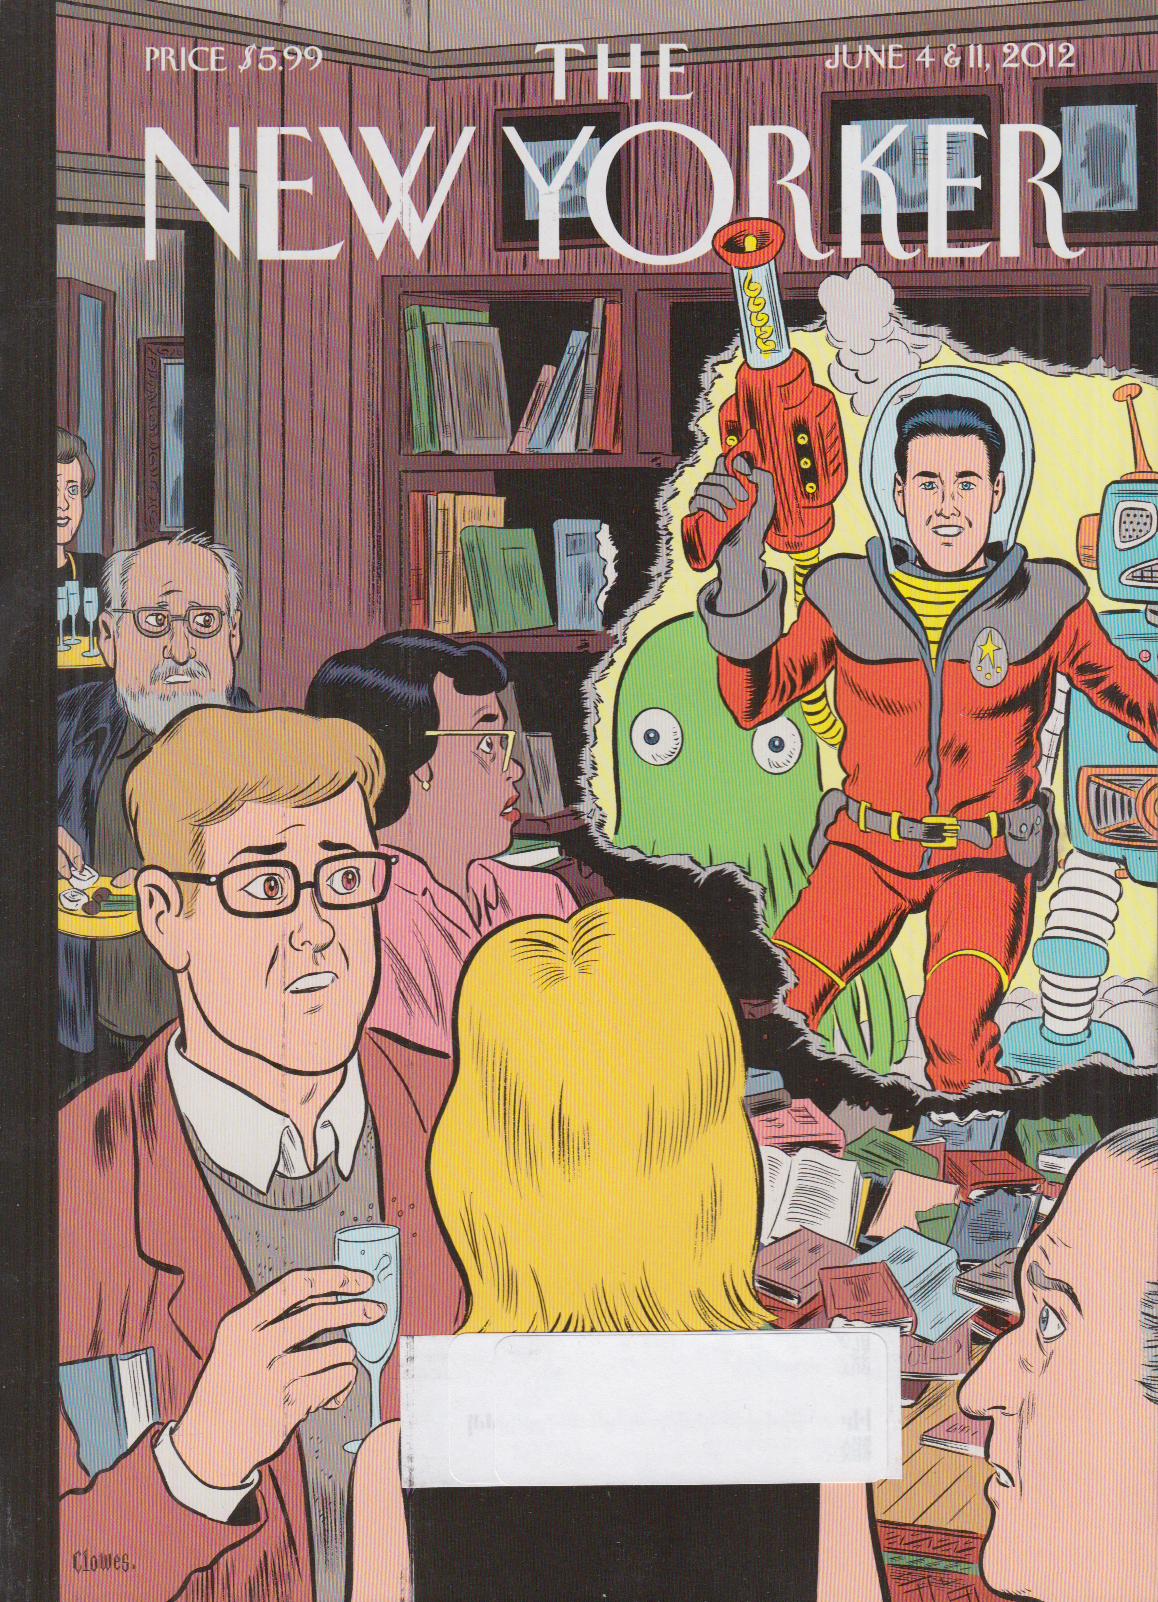 New Yorker cover Clowes 6/4 2012 Raygun superhero crashes cocktail party